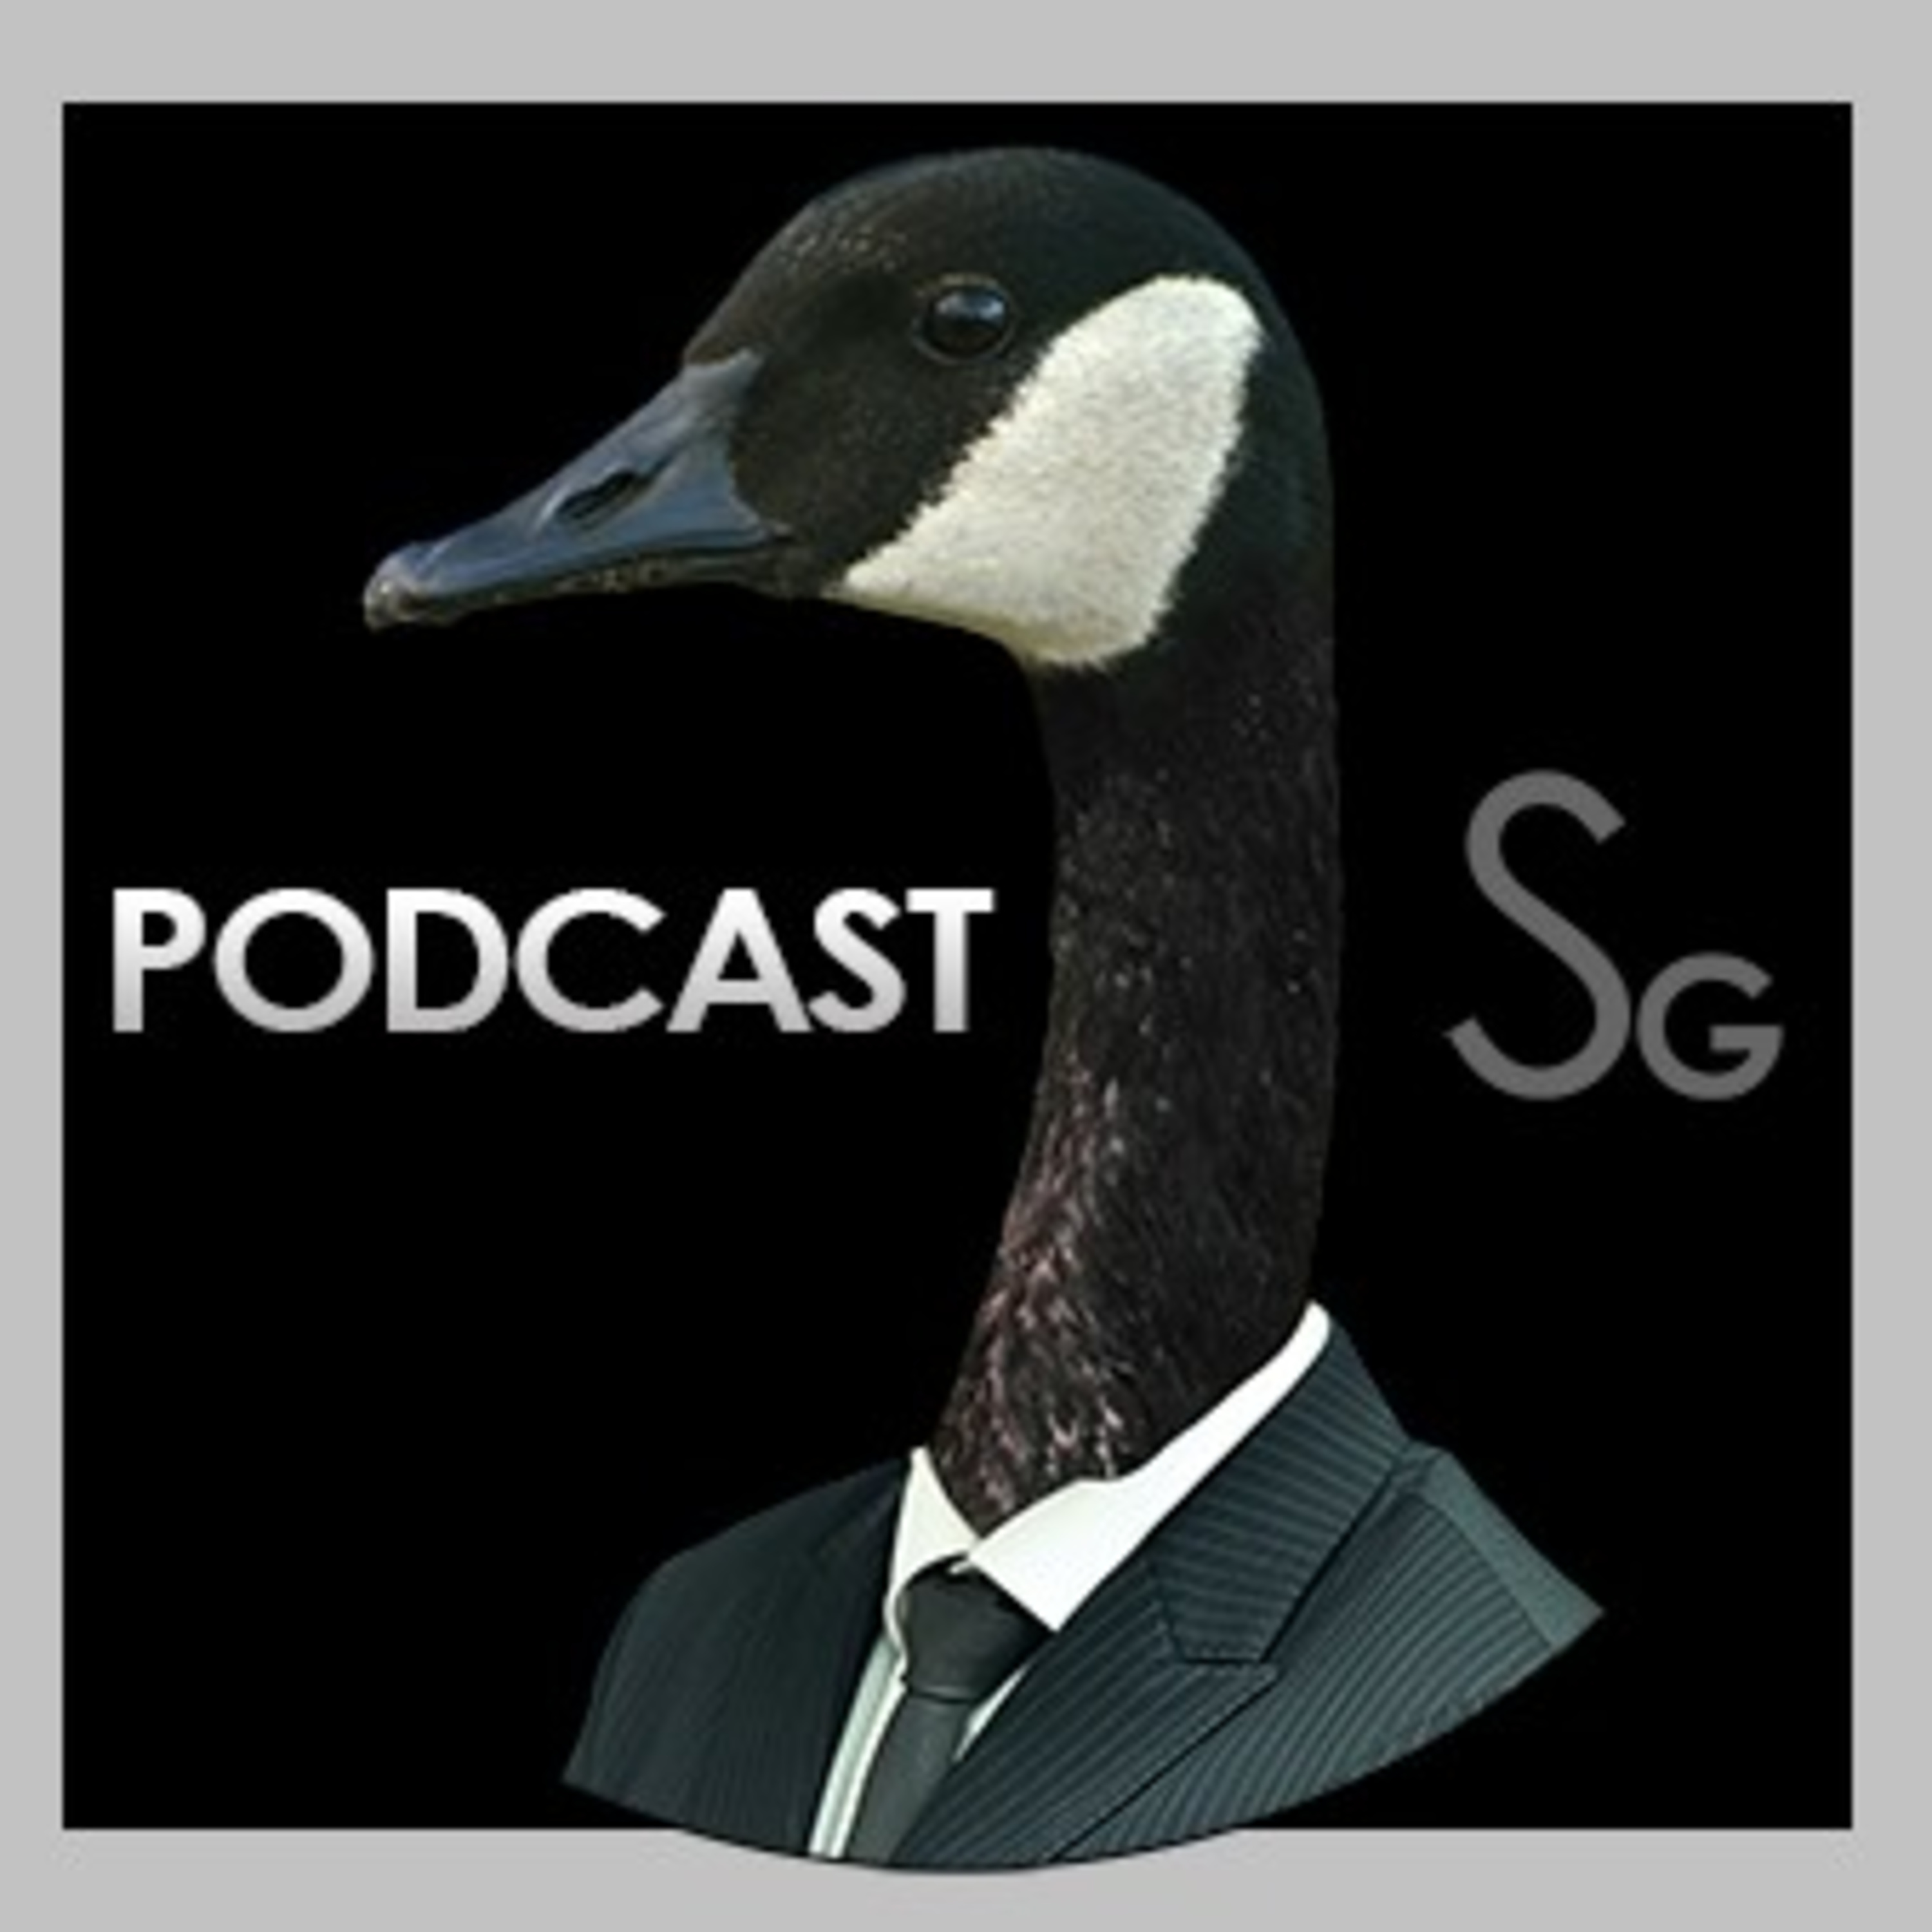 Pilot EP1 - The History of Savagegeese